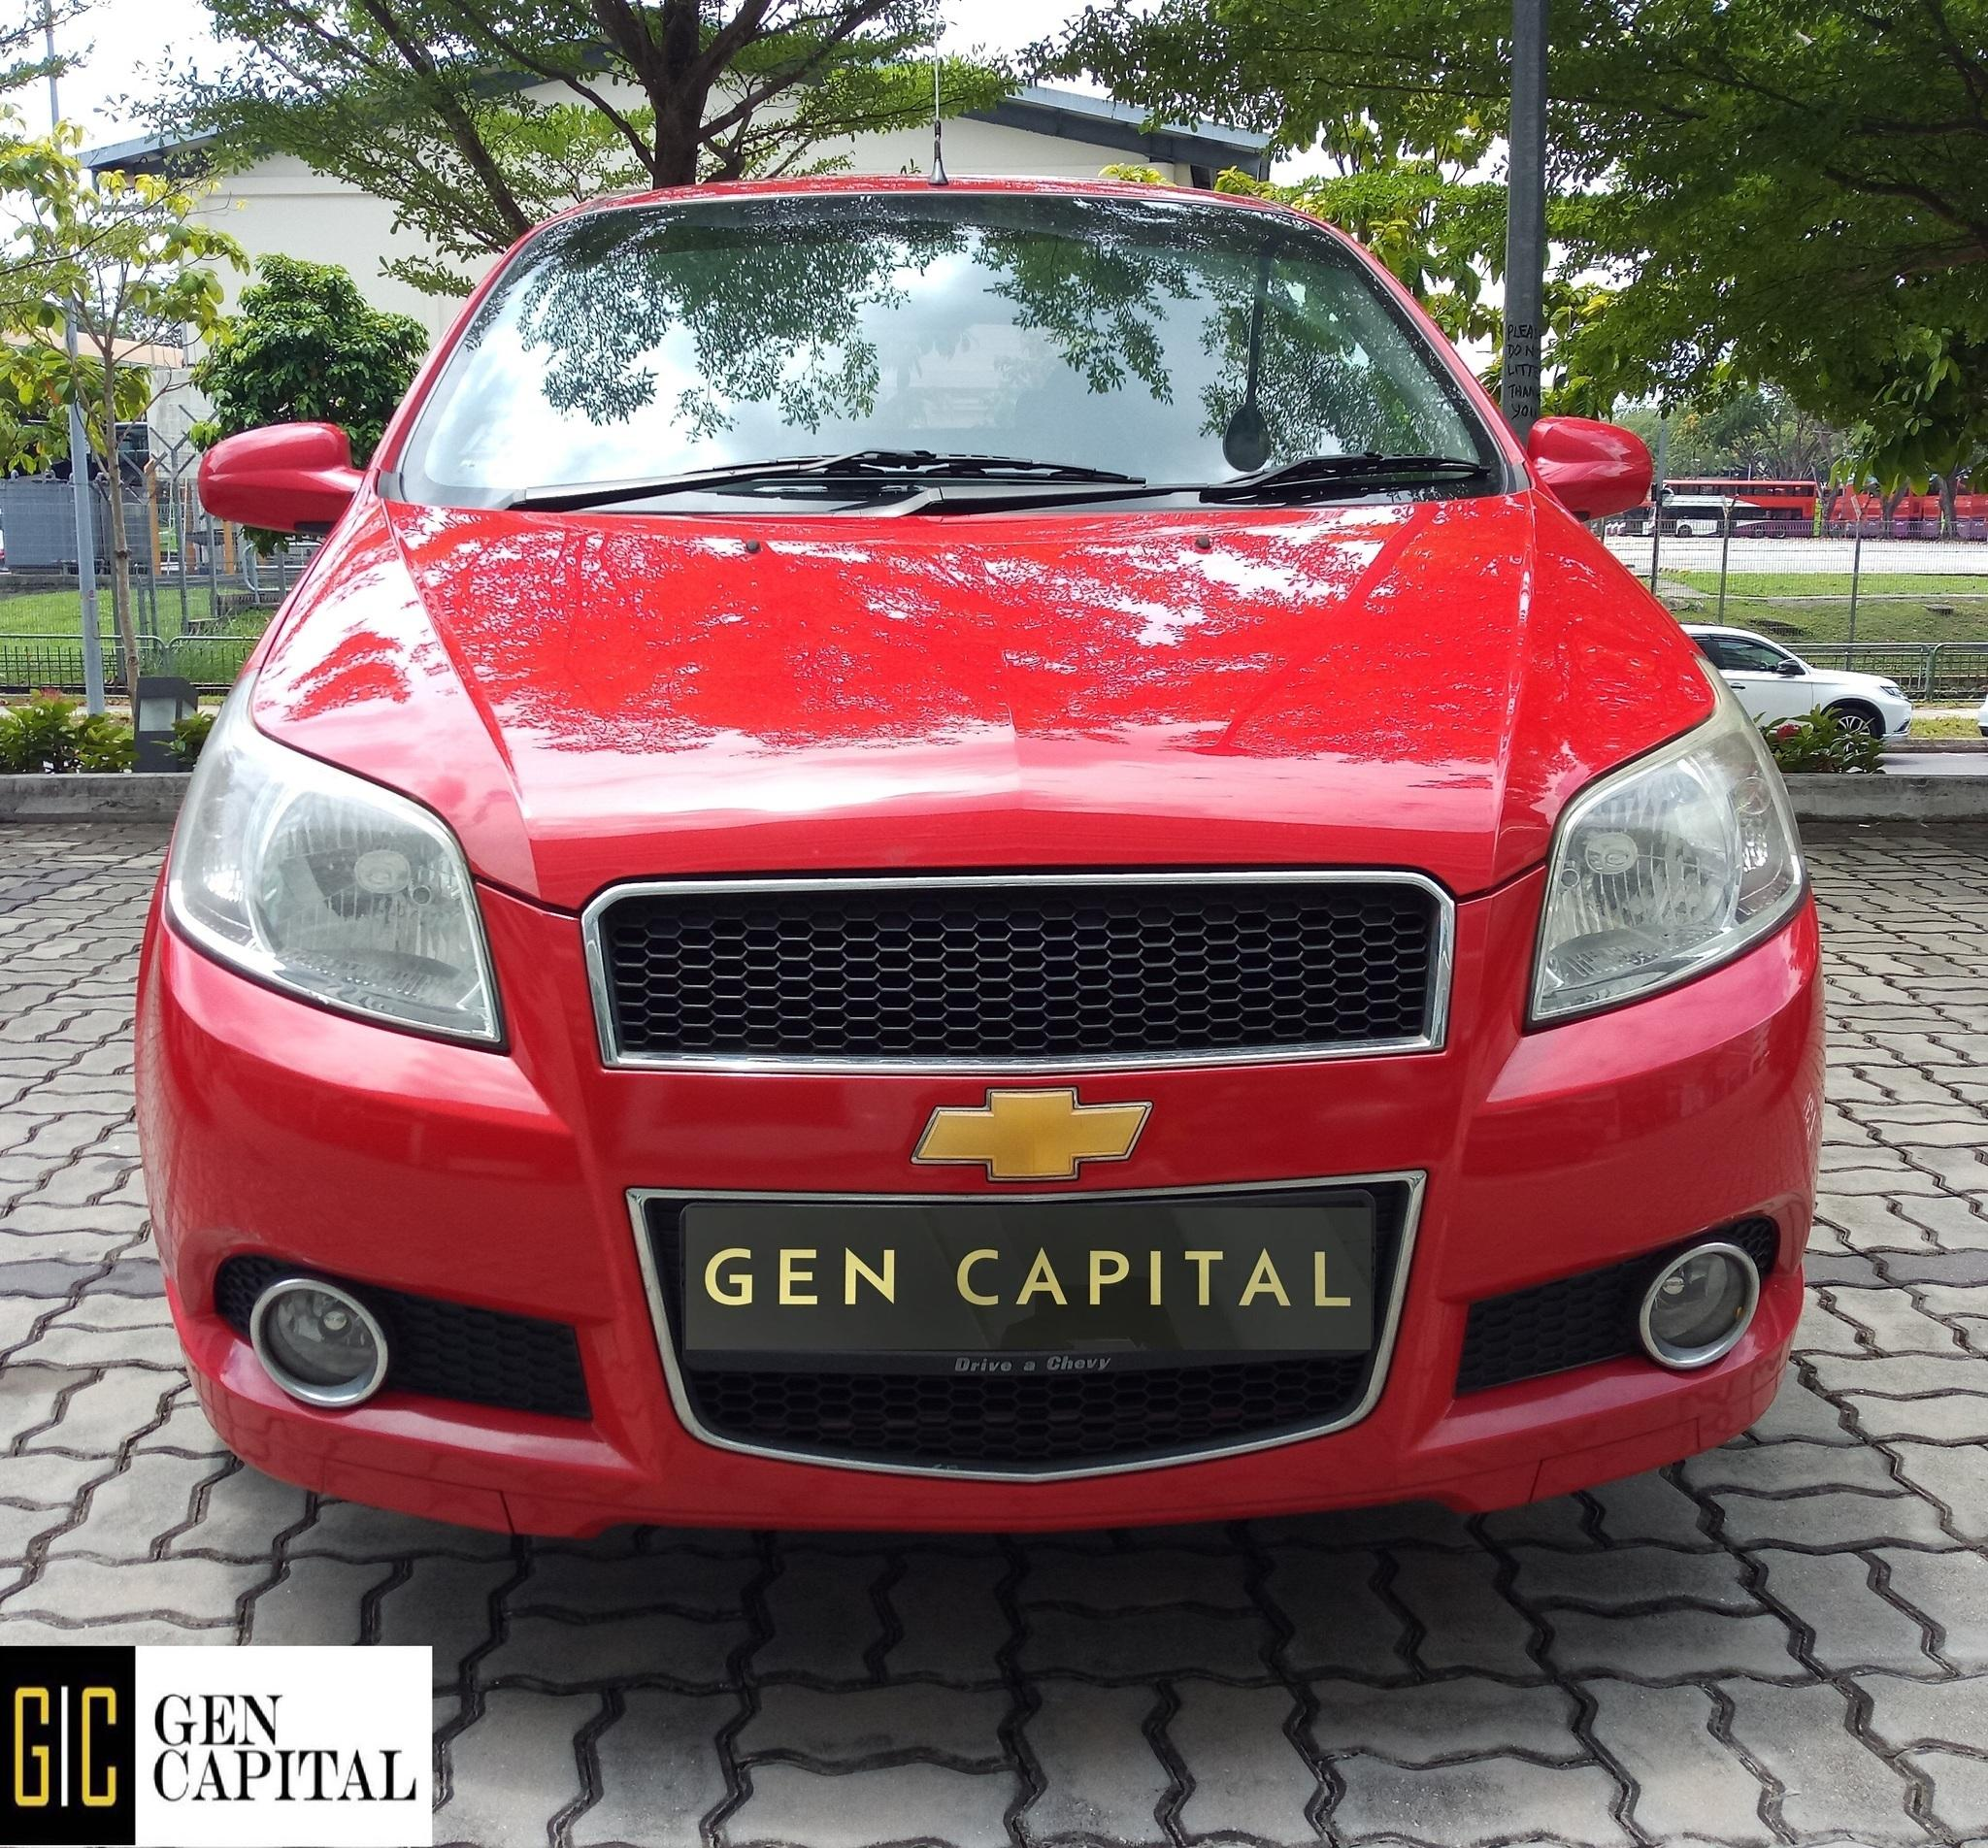 Chevrolet Aveo 1.4A Hatchback Nice & Simple Car at Low Rental Rate